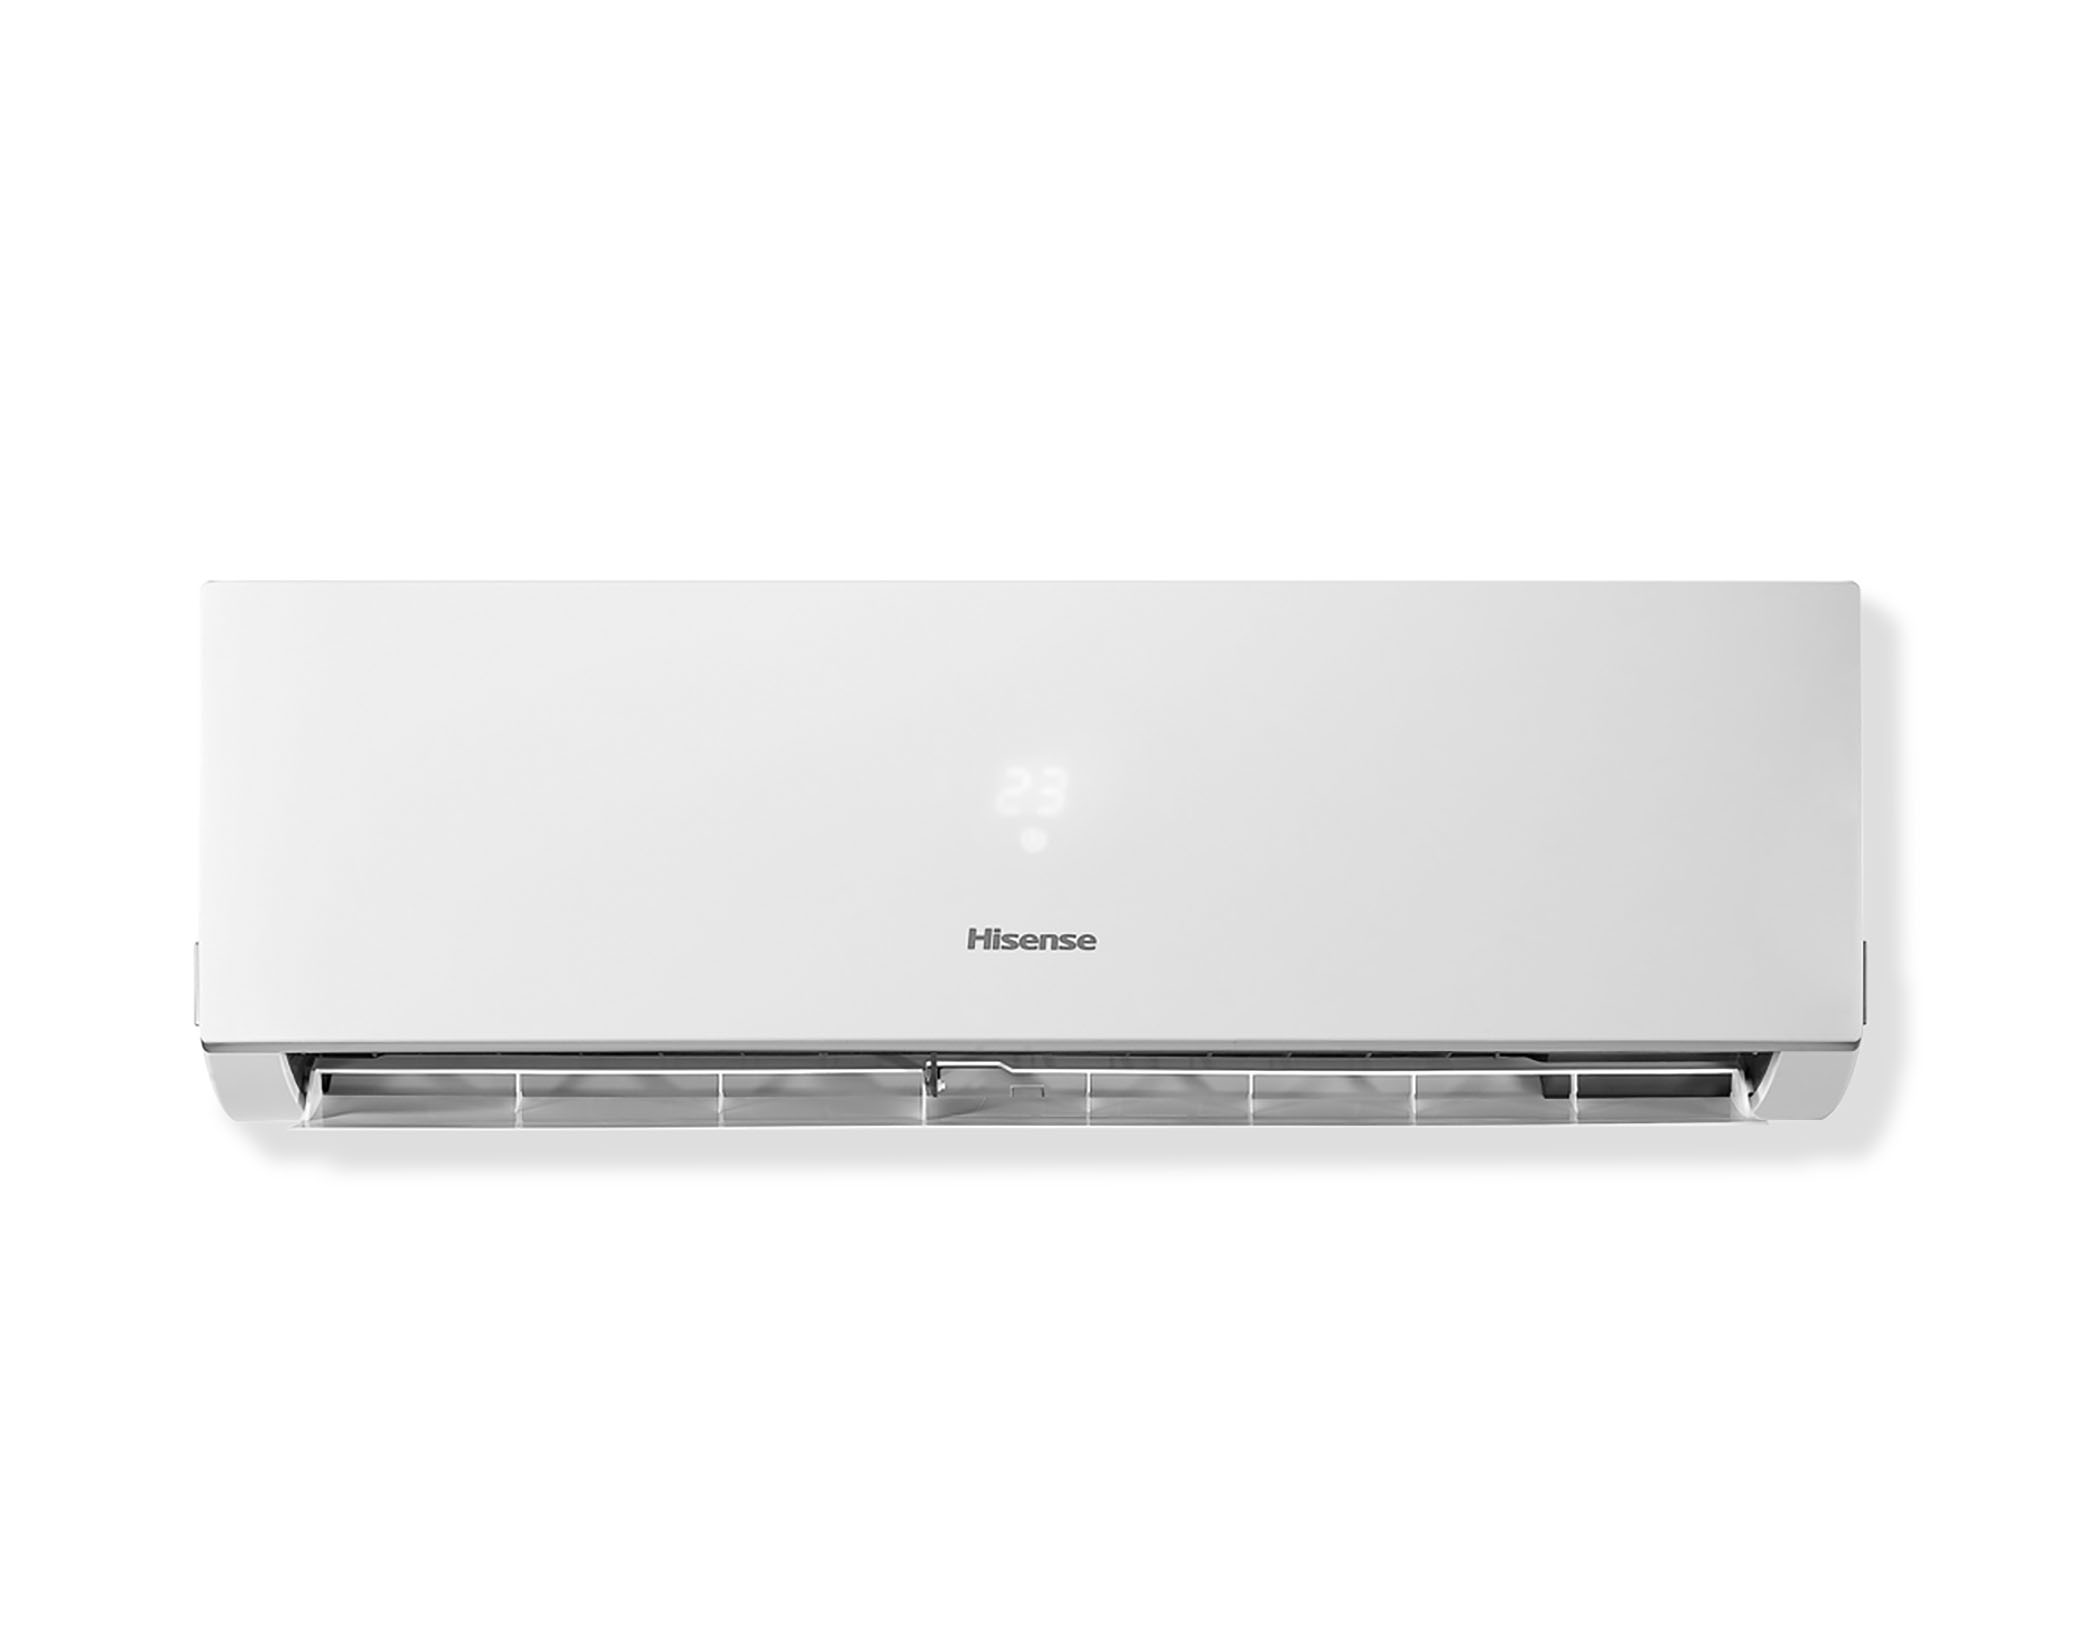 Hisense HSA71R 7.1kW Reverse Cycle Split System Air Conditioner Main